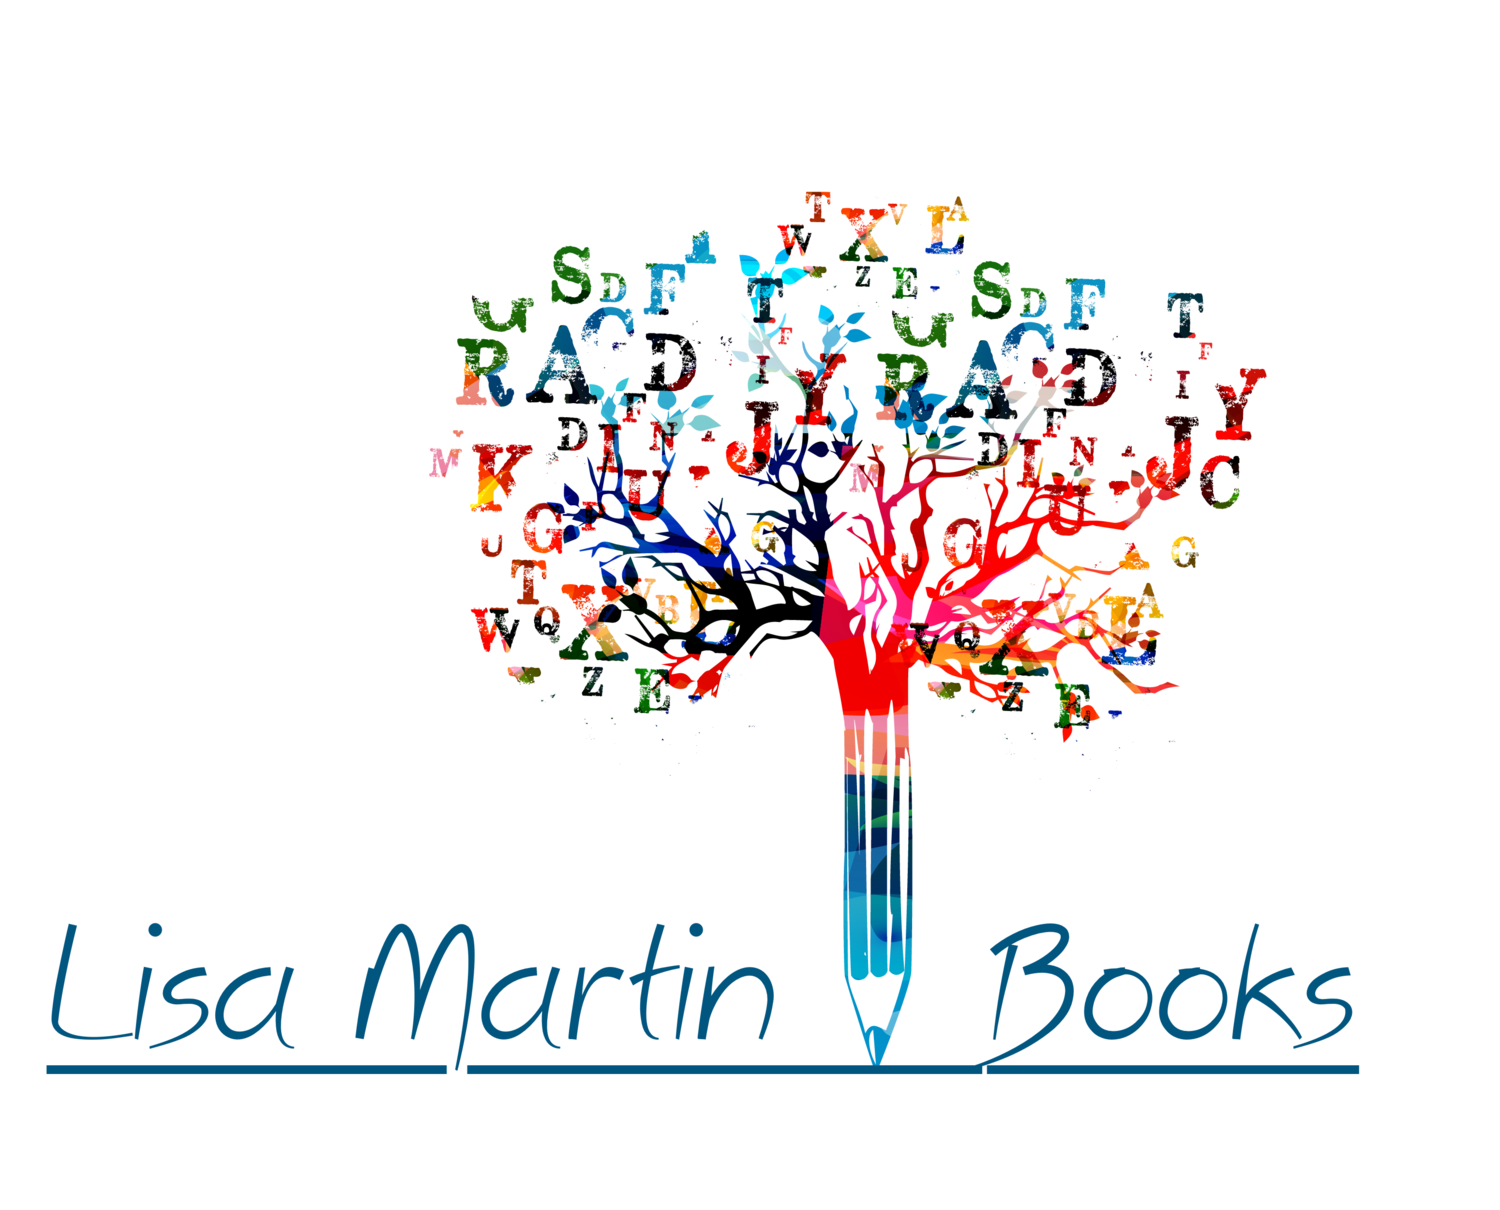 Lisa Martin Books